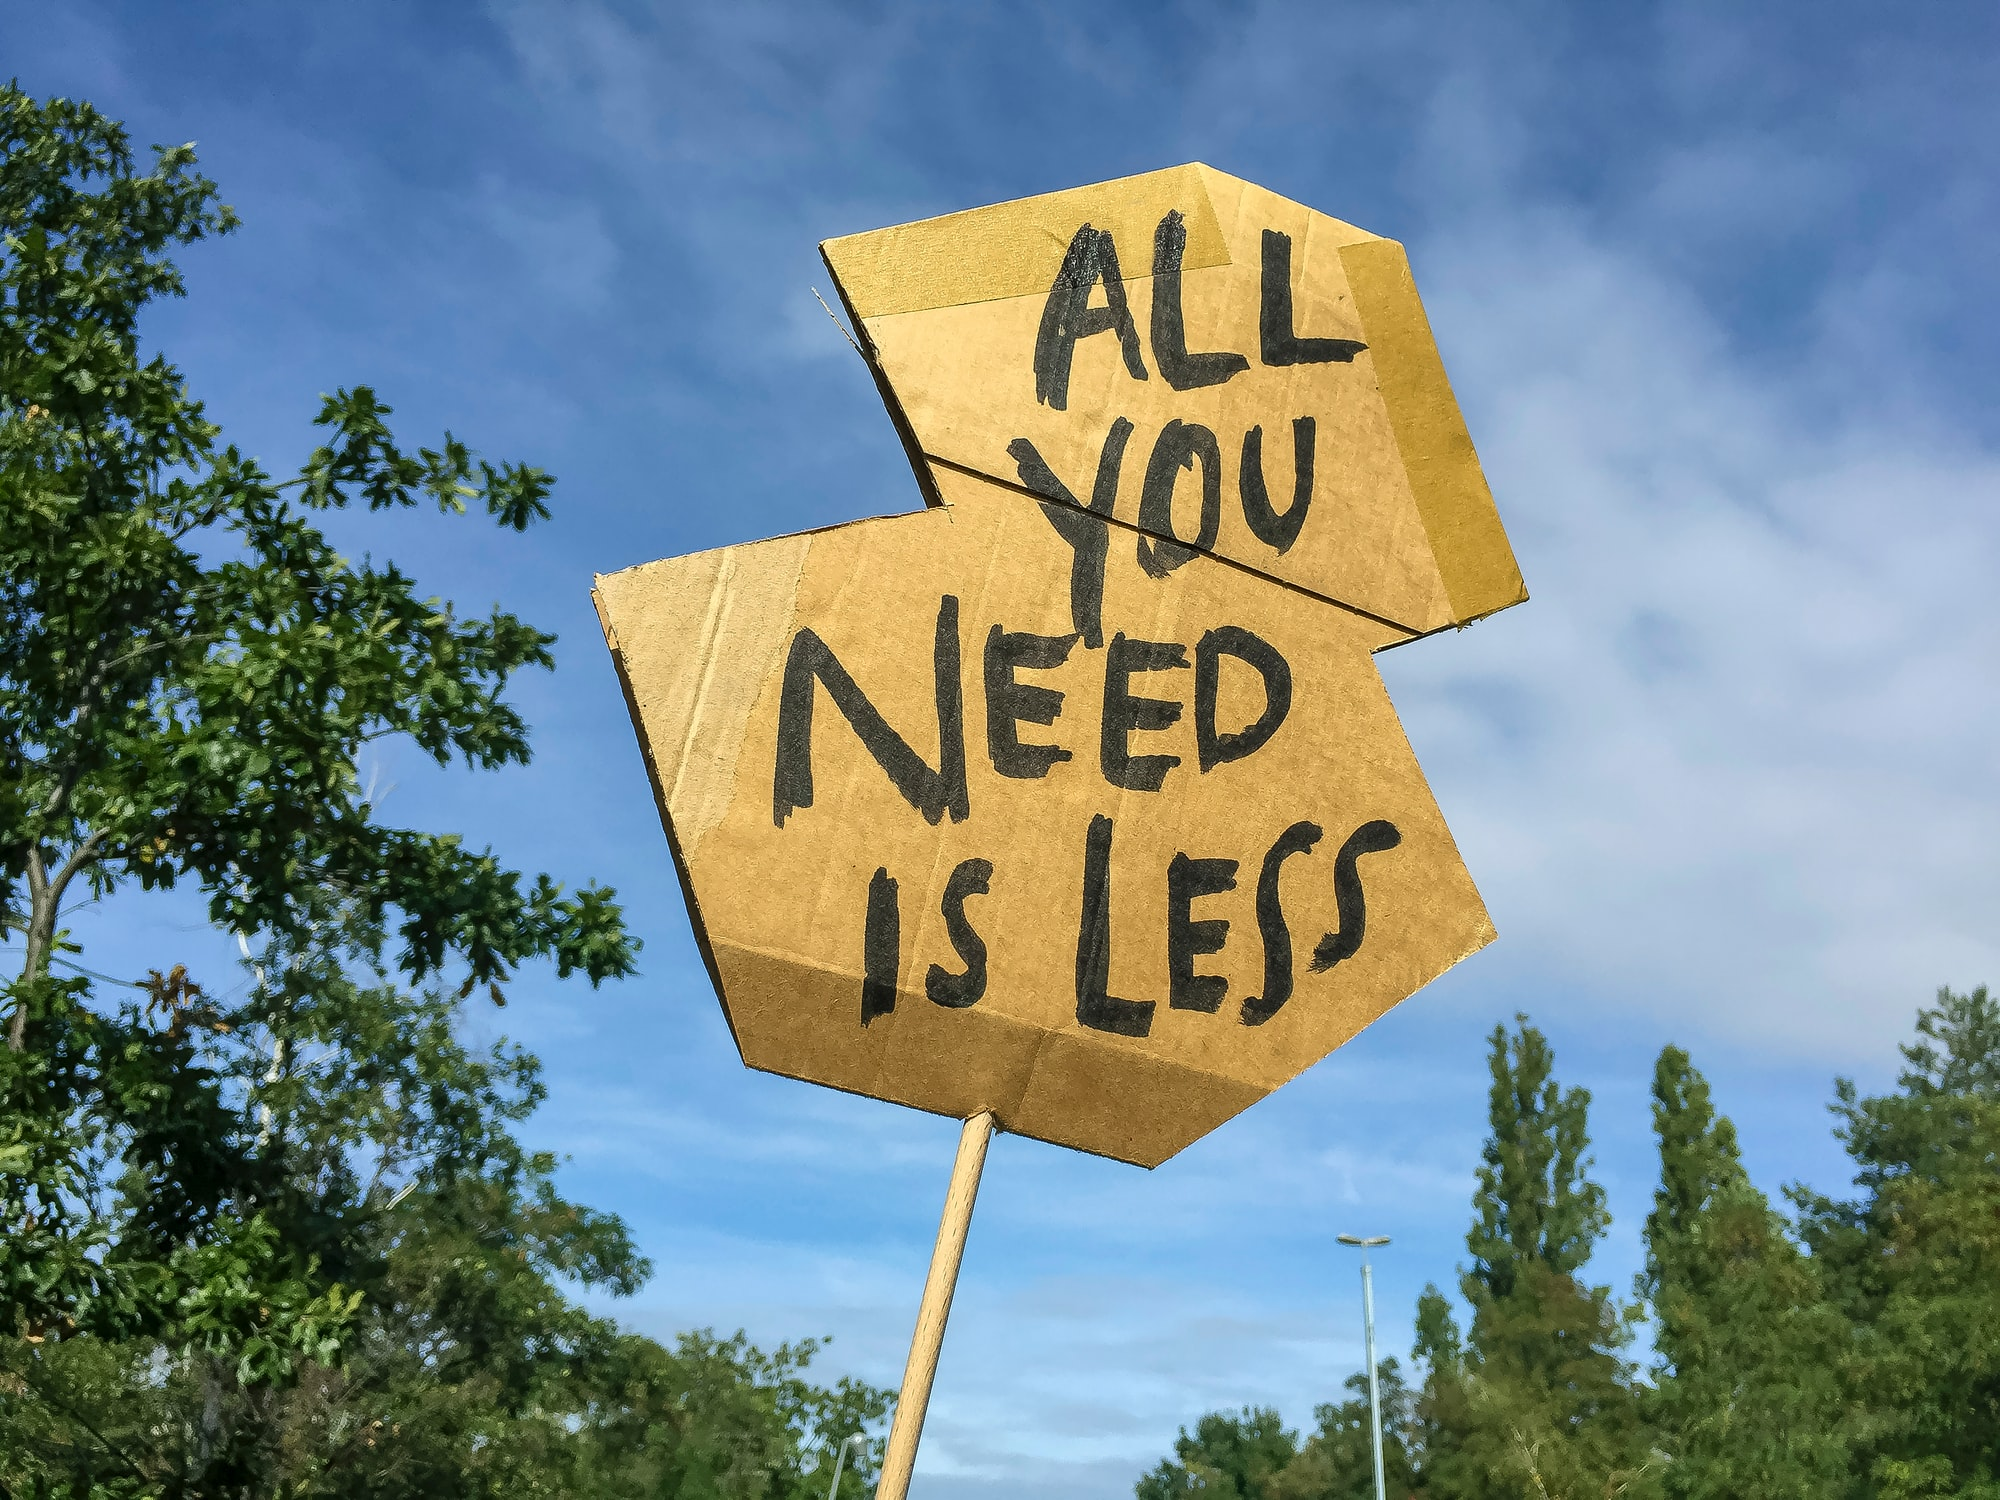 »all you need is less« poster during climate change protest in Berlin